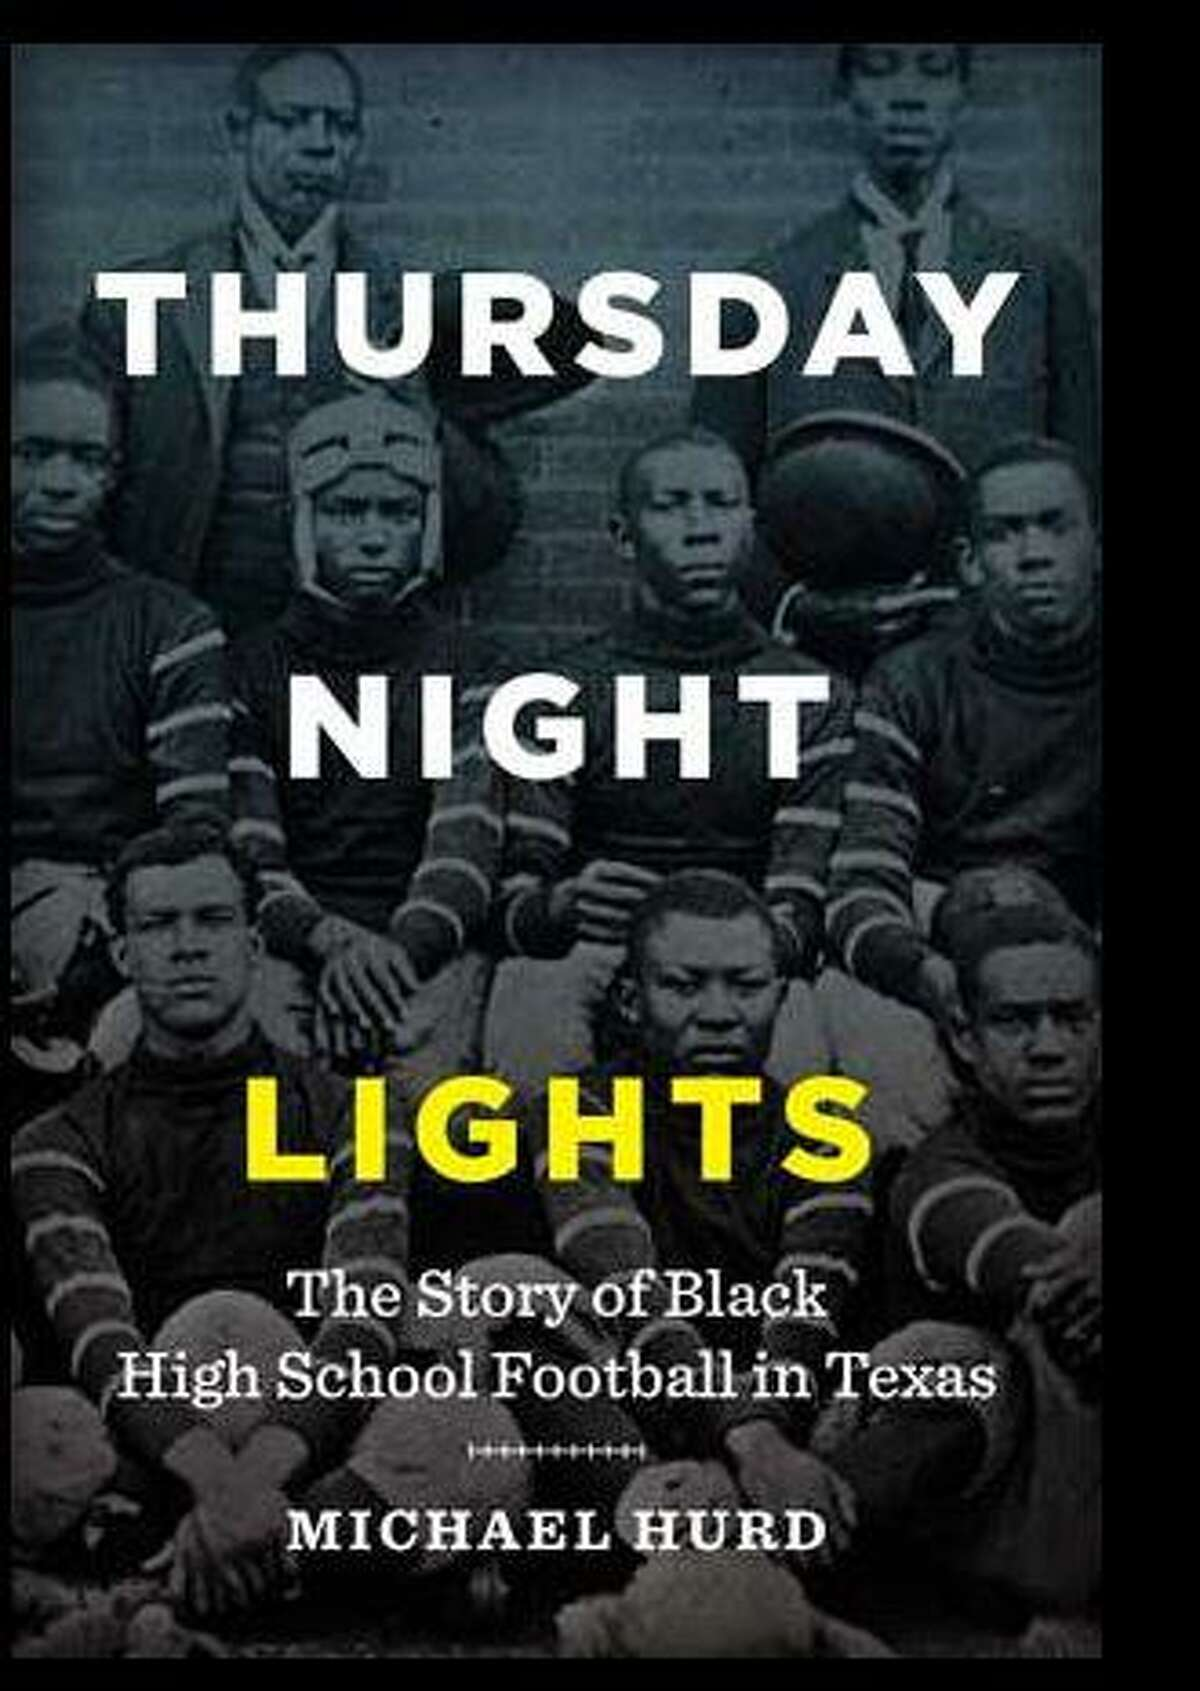 """""""Thursday Night Lights"""" documents the mostly untold stories of black high school football in Texas. Authored by The Woodlands resident Michael Hurd, the book was chosen as one of the top 30 'must read' books about Texas by literature critic Andrew Dansby."""